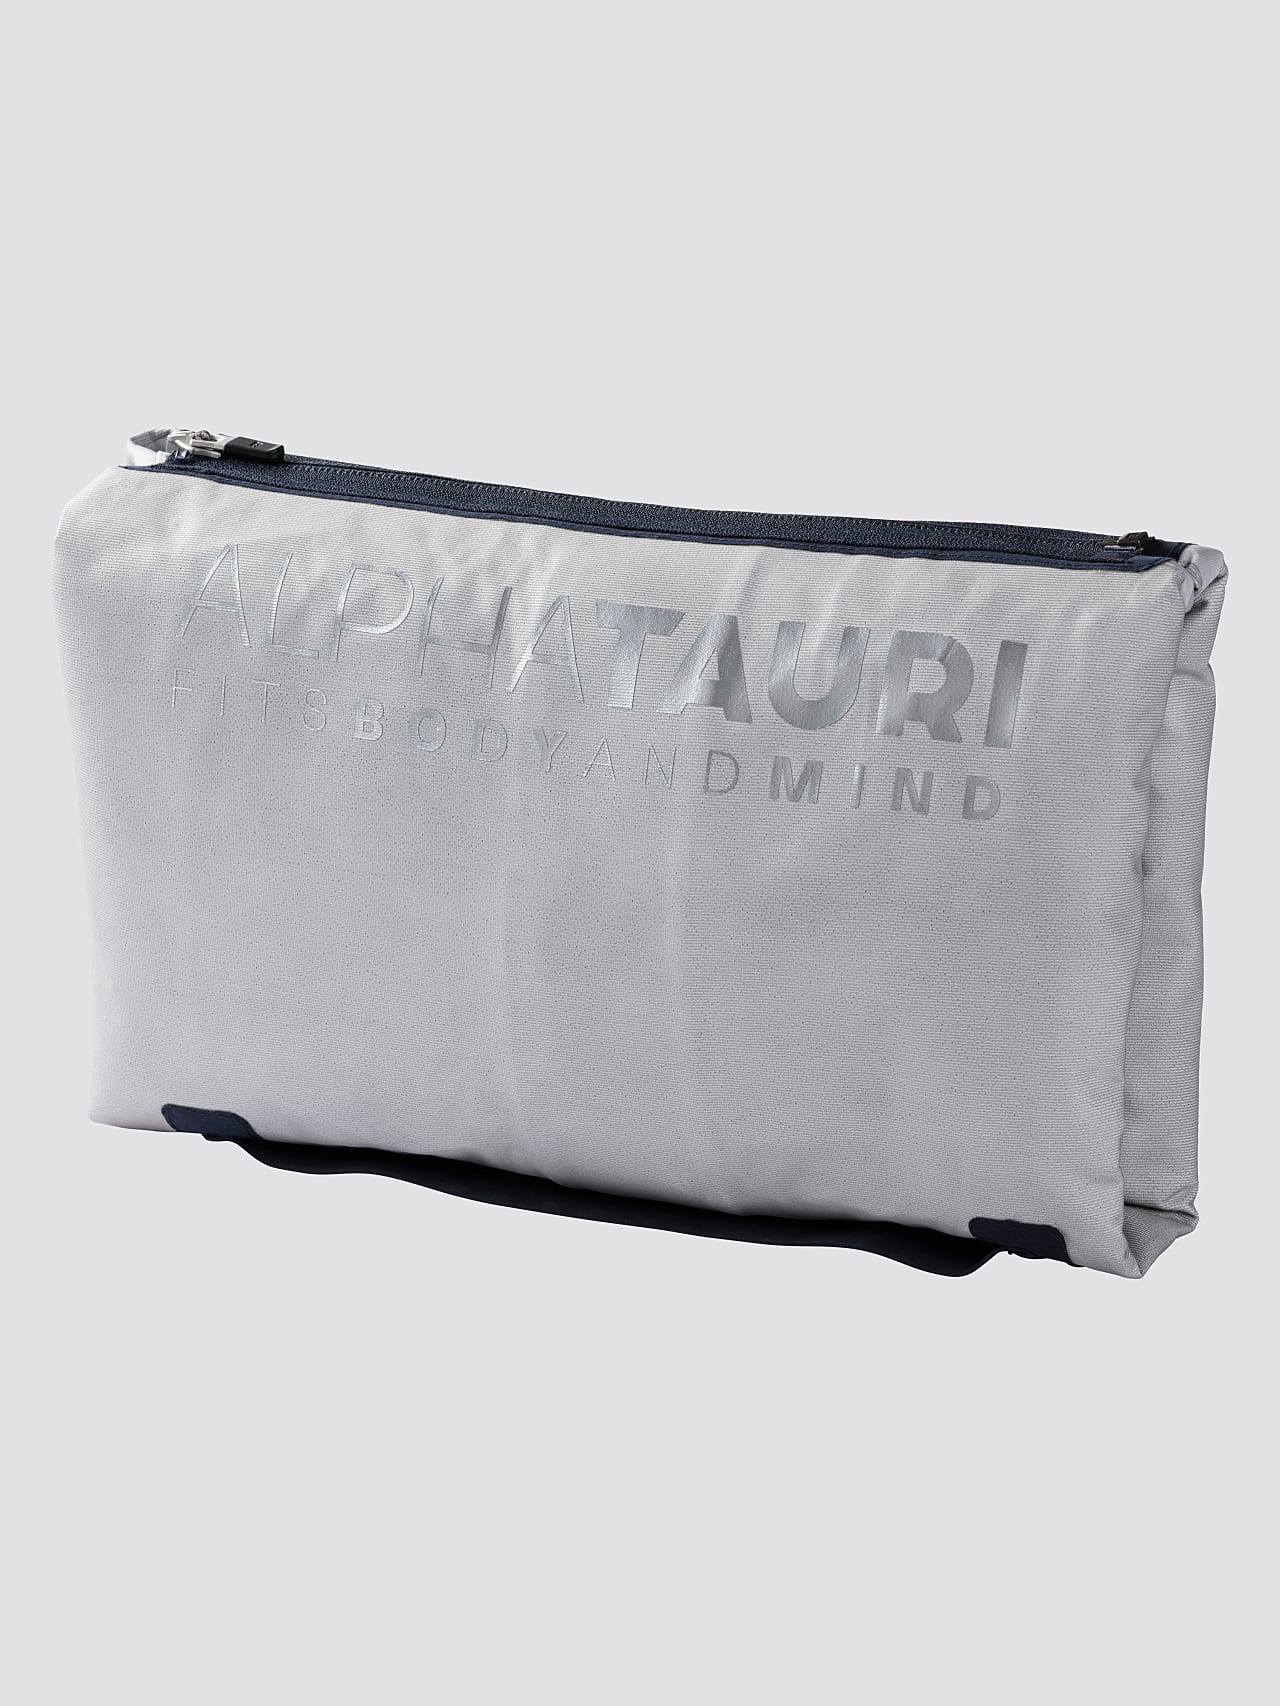 OZENZ V1.Y5.01 Packable Waterproof Trench navy scene7.view.11.name Alpha Tauri